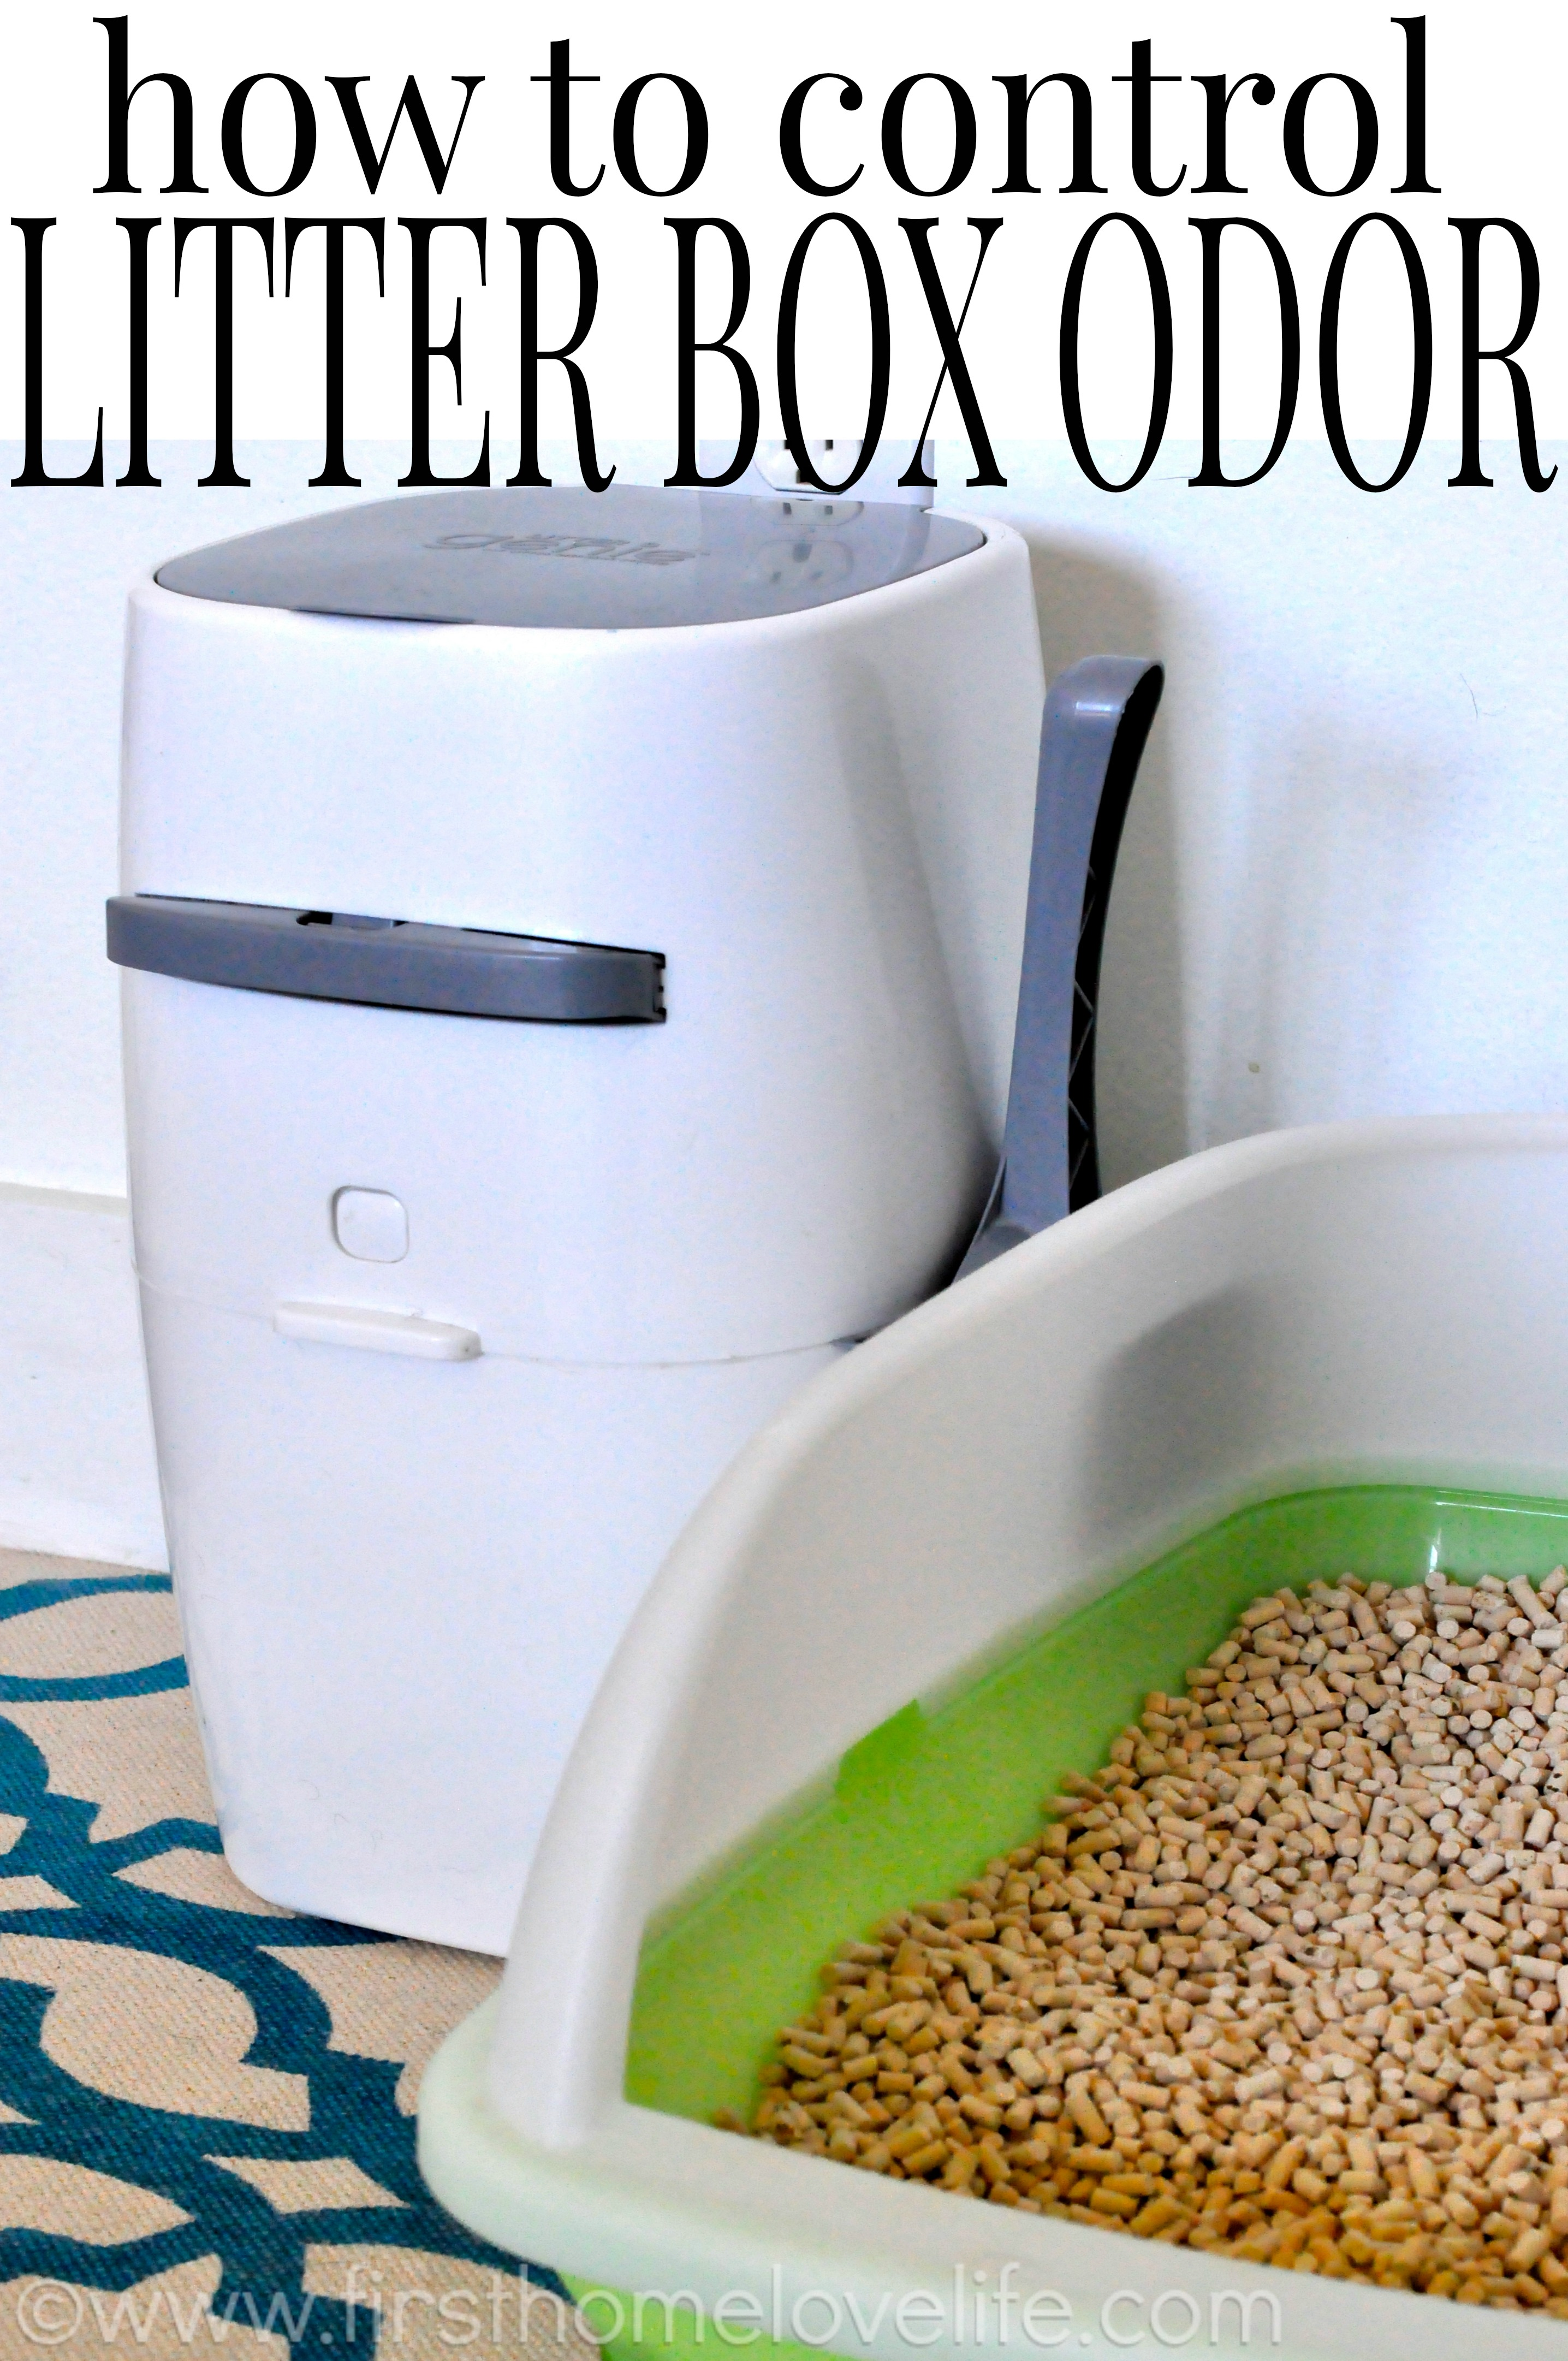 No More Litter Box Odor First Home Love Life